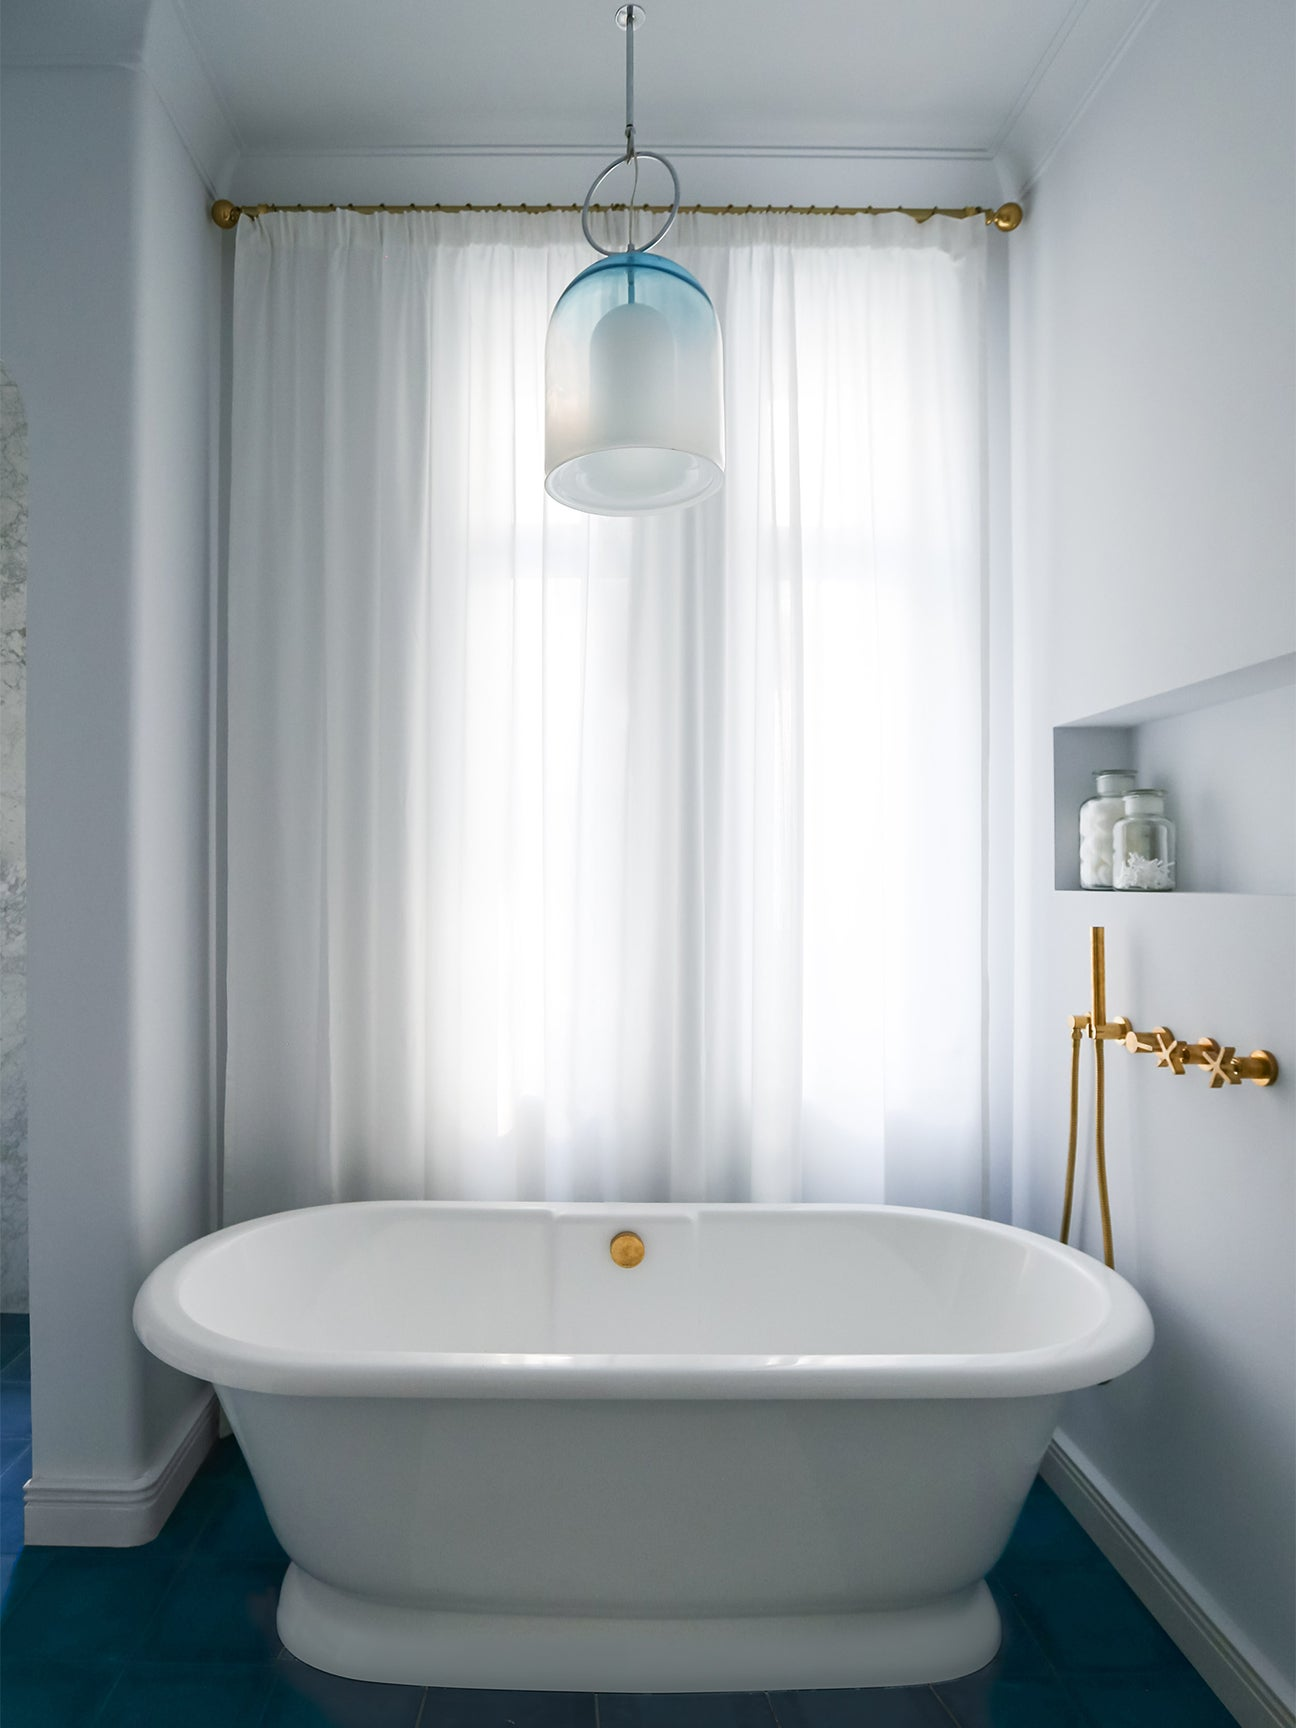 white bathtub in front of curtain window